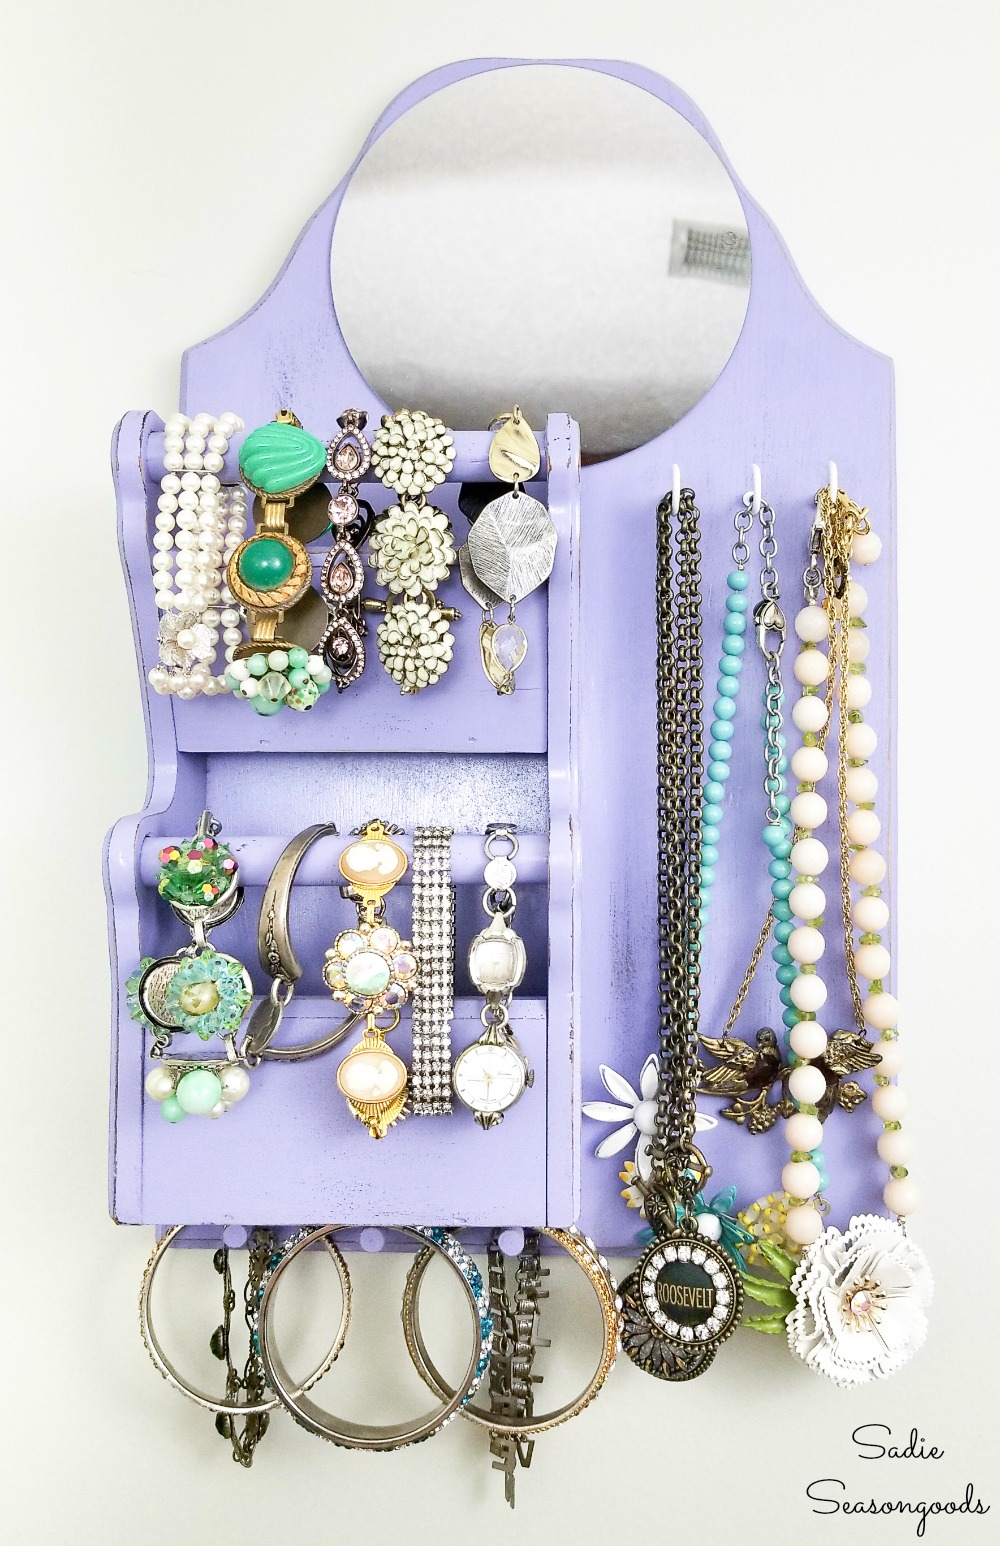 Dorm room storage or apartment storage with a DIY jewelry hanger